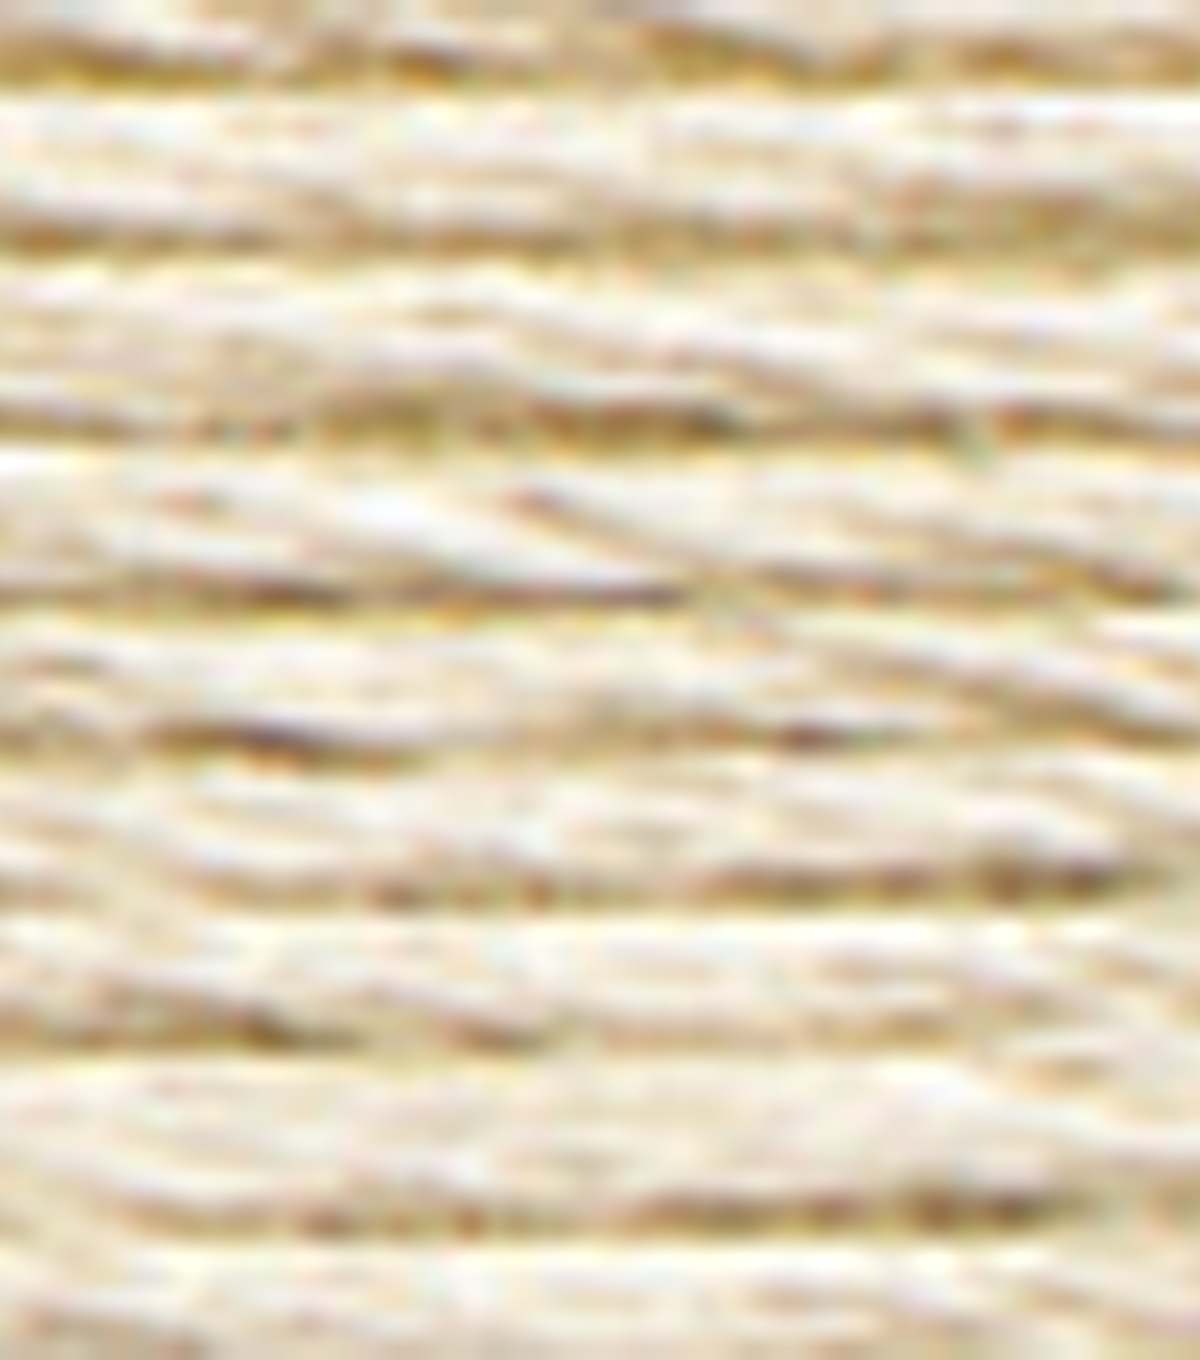 DMC Pearl Cotton Thread 16 Yds Size 3 Neutrals, Vy Lt Mocha Brown/3033